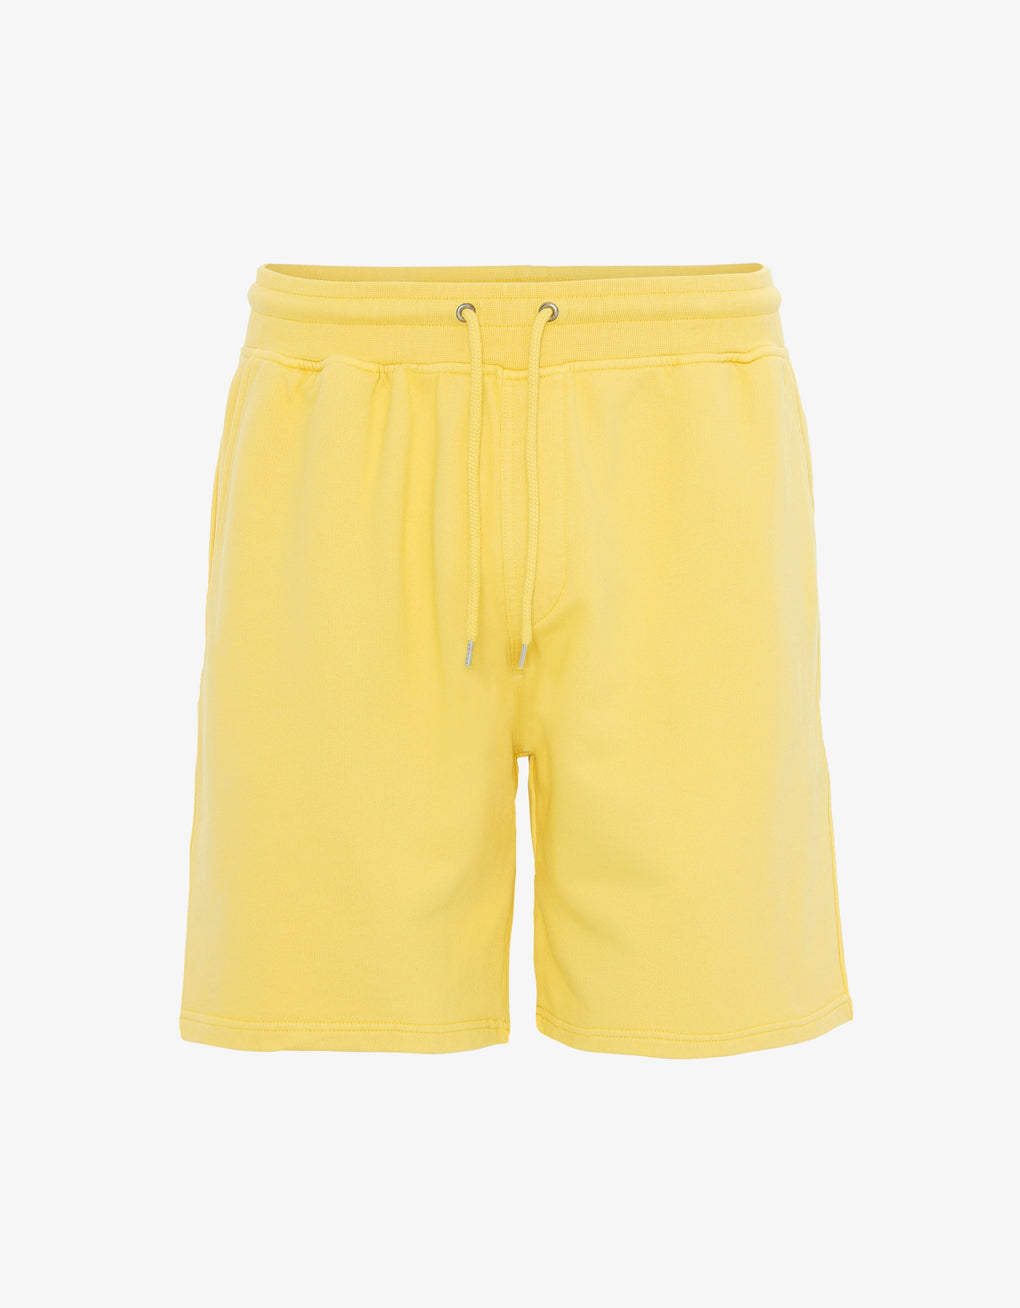 Colorful Standard Classic Organic Sweatshorts Shorts Lemon Yellow